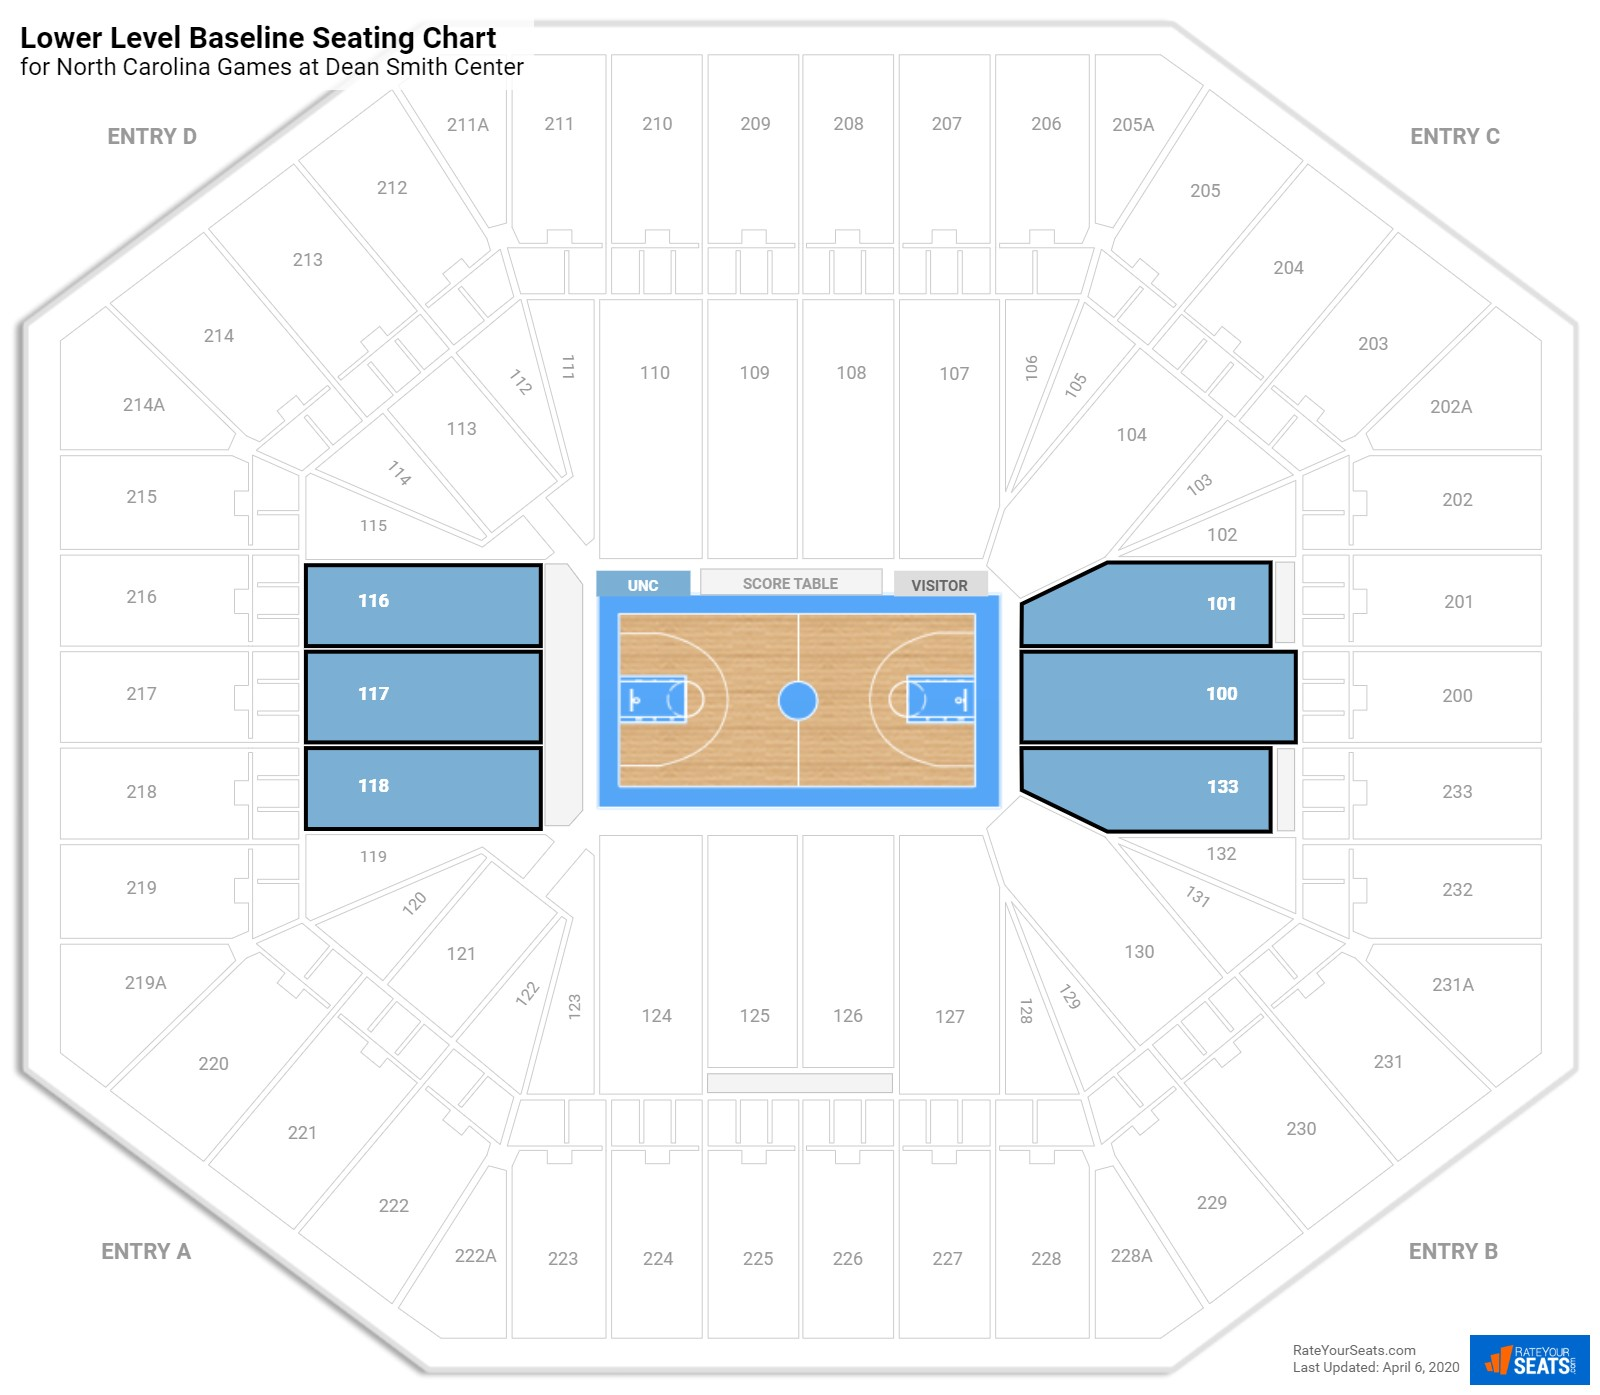 Dean Smith Center Lower Level Baseline Seating Chart